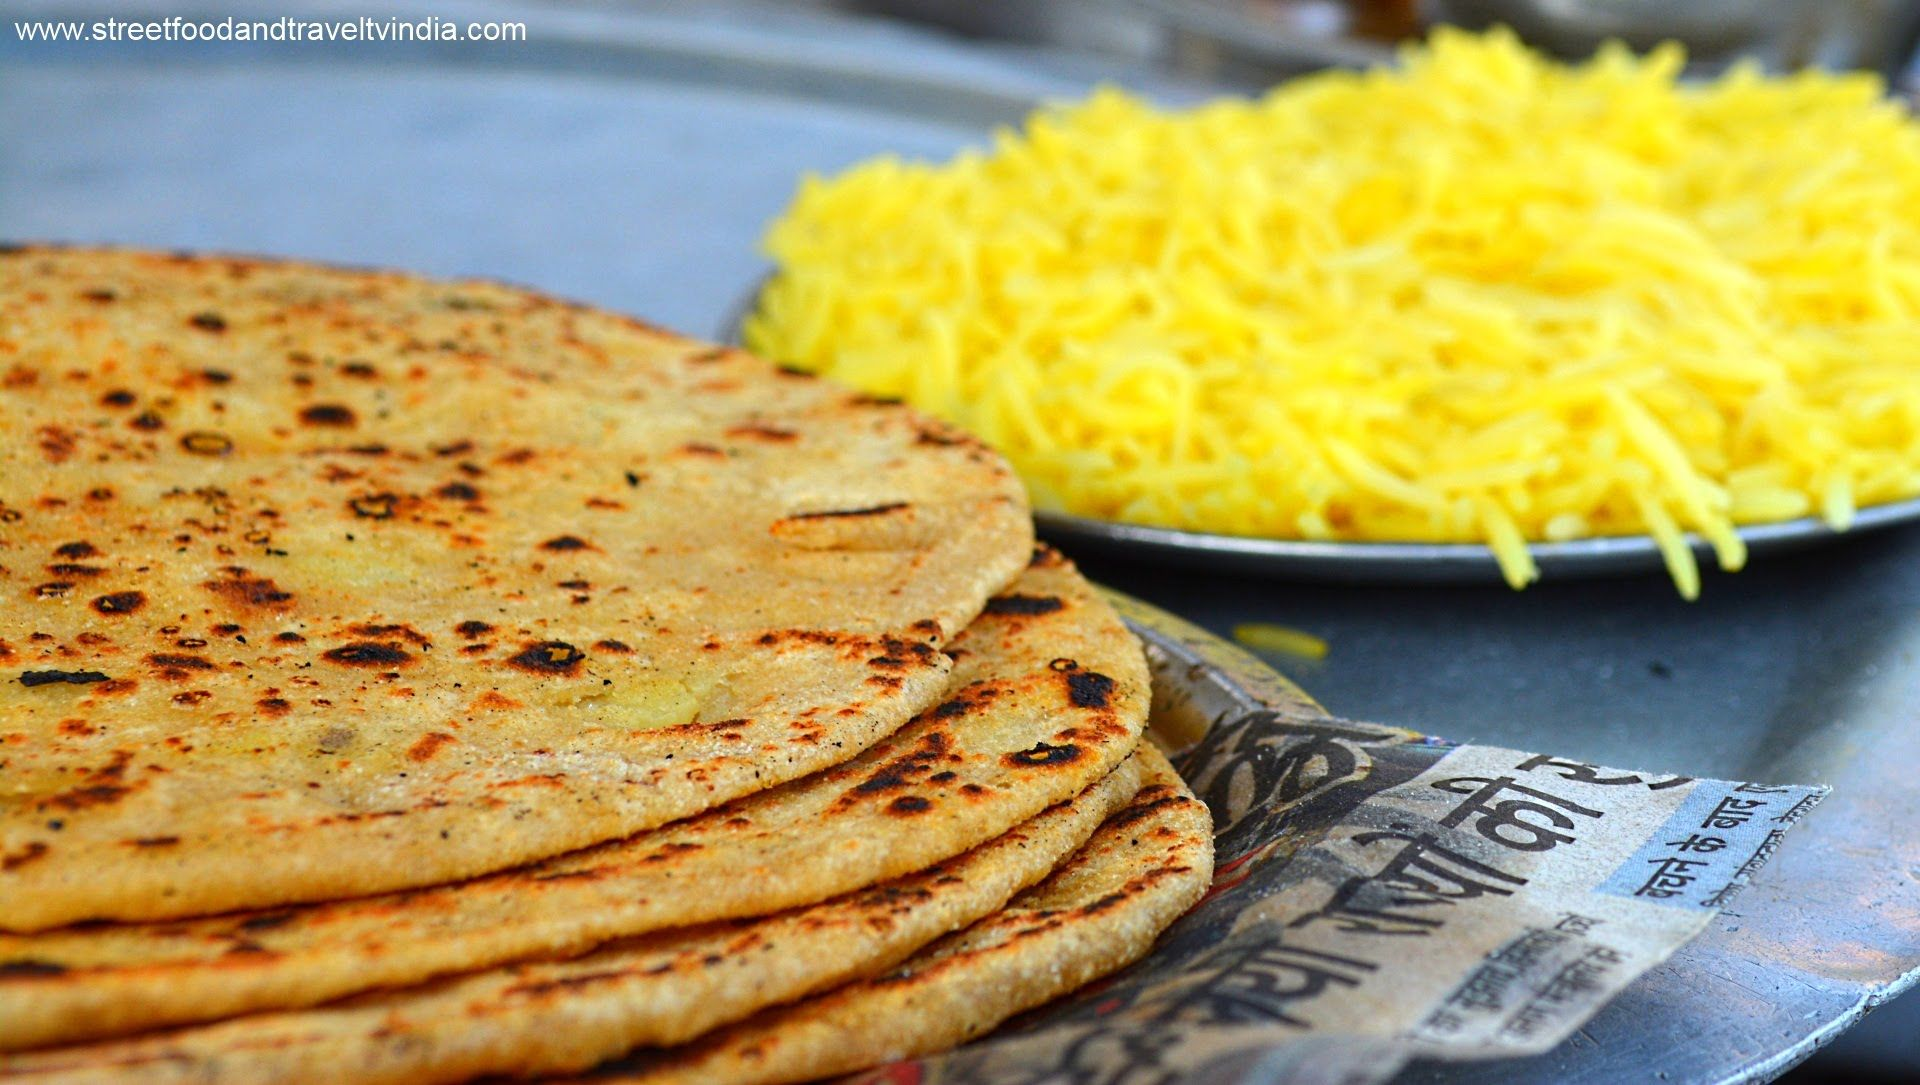 Traditional aloo paratha indian street food haridwar uttarakhand traditional aloo paratha indian street food haridwar uttarakhand indian food cooking video 5 forumfinder Choice Image